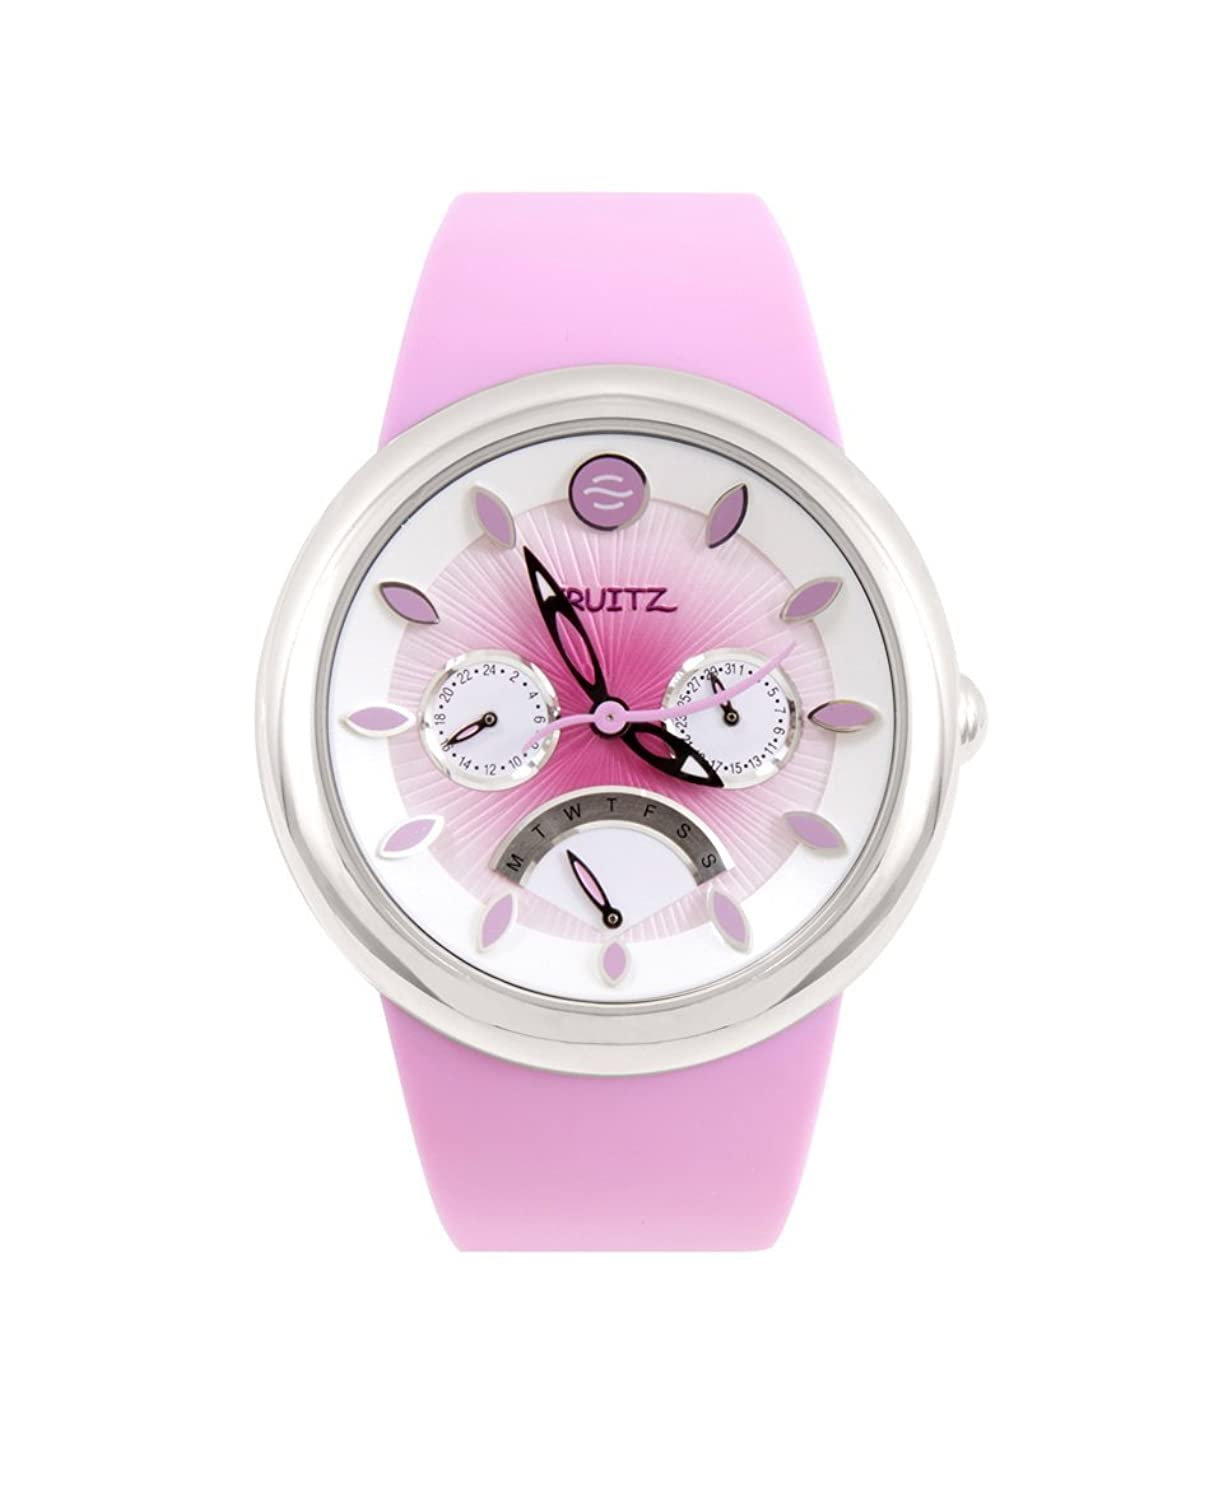 Strawberry Daiquiri Pink Dial Pink Silicone Strap Unisex Armbanduhr